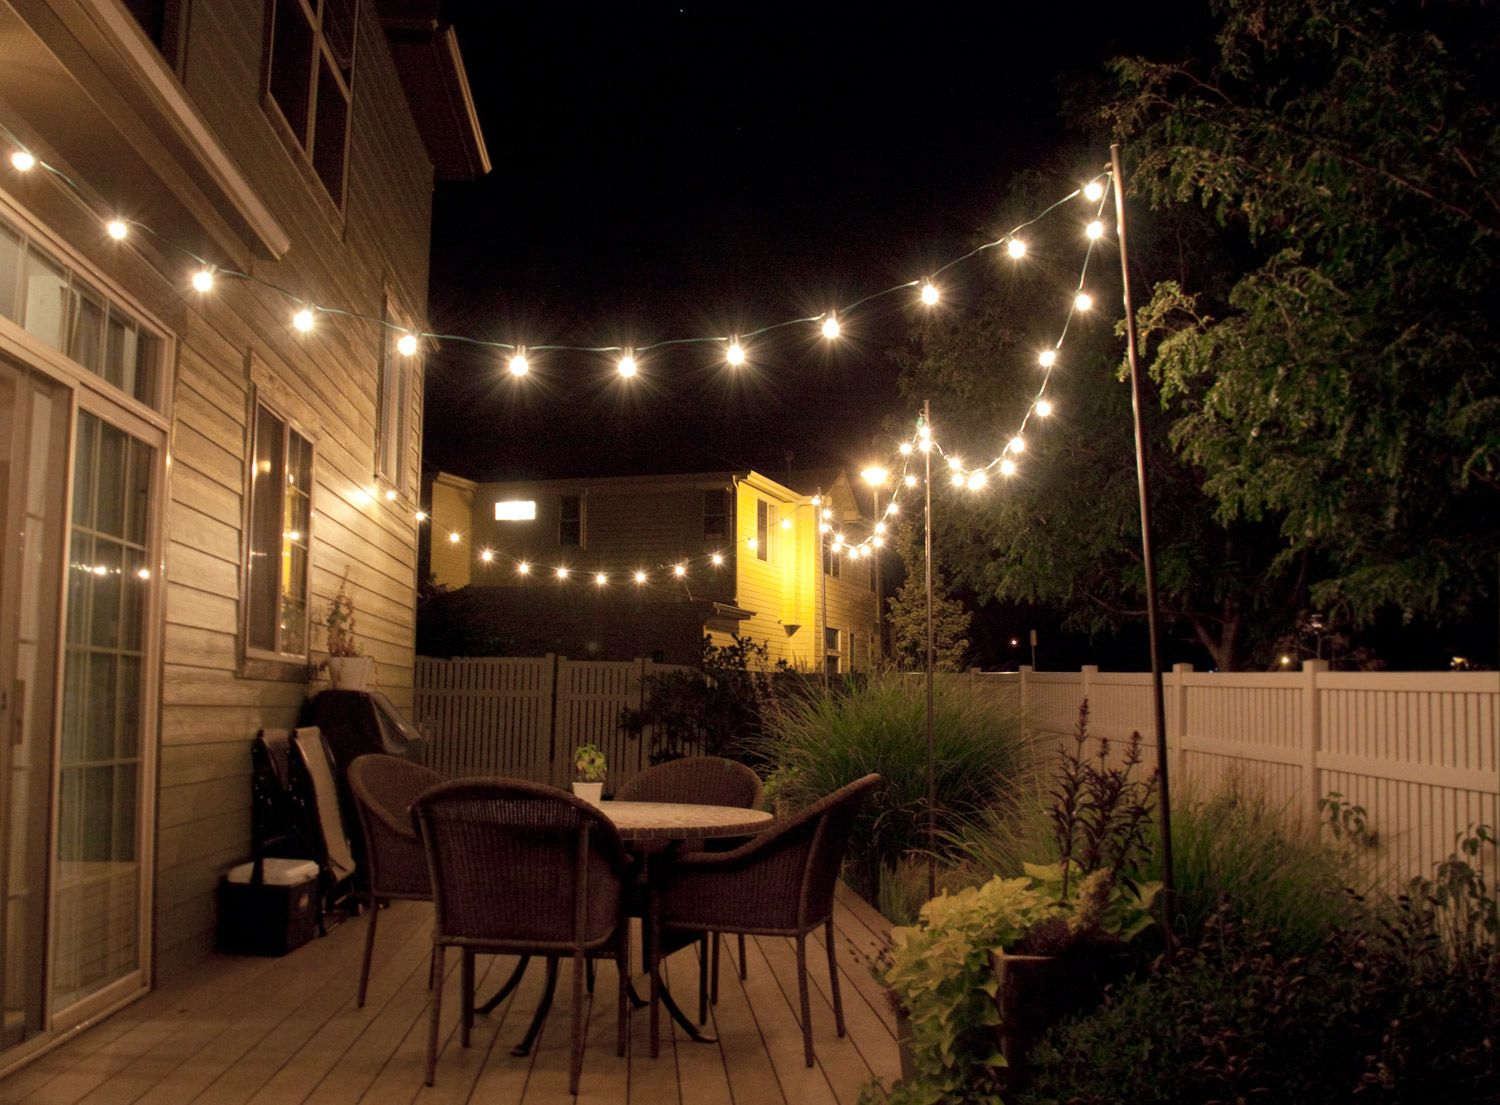 Rope Lights Lowes Enchanting How To Make Inexpensive Poles To Hang String Lights On  Café Style